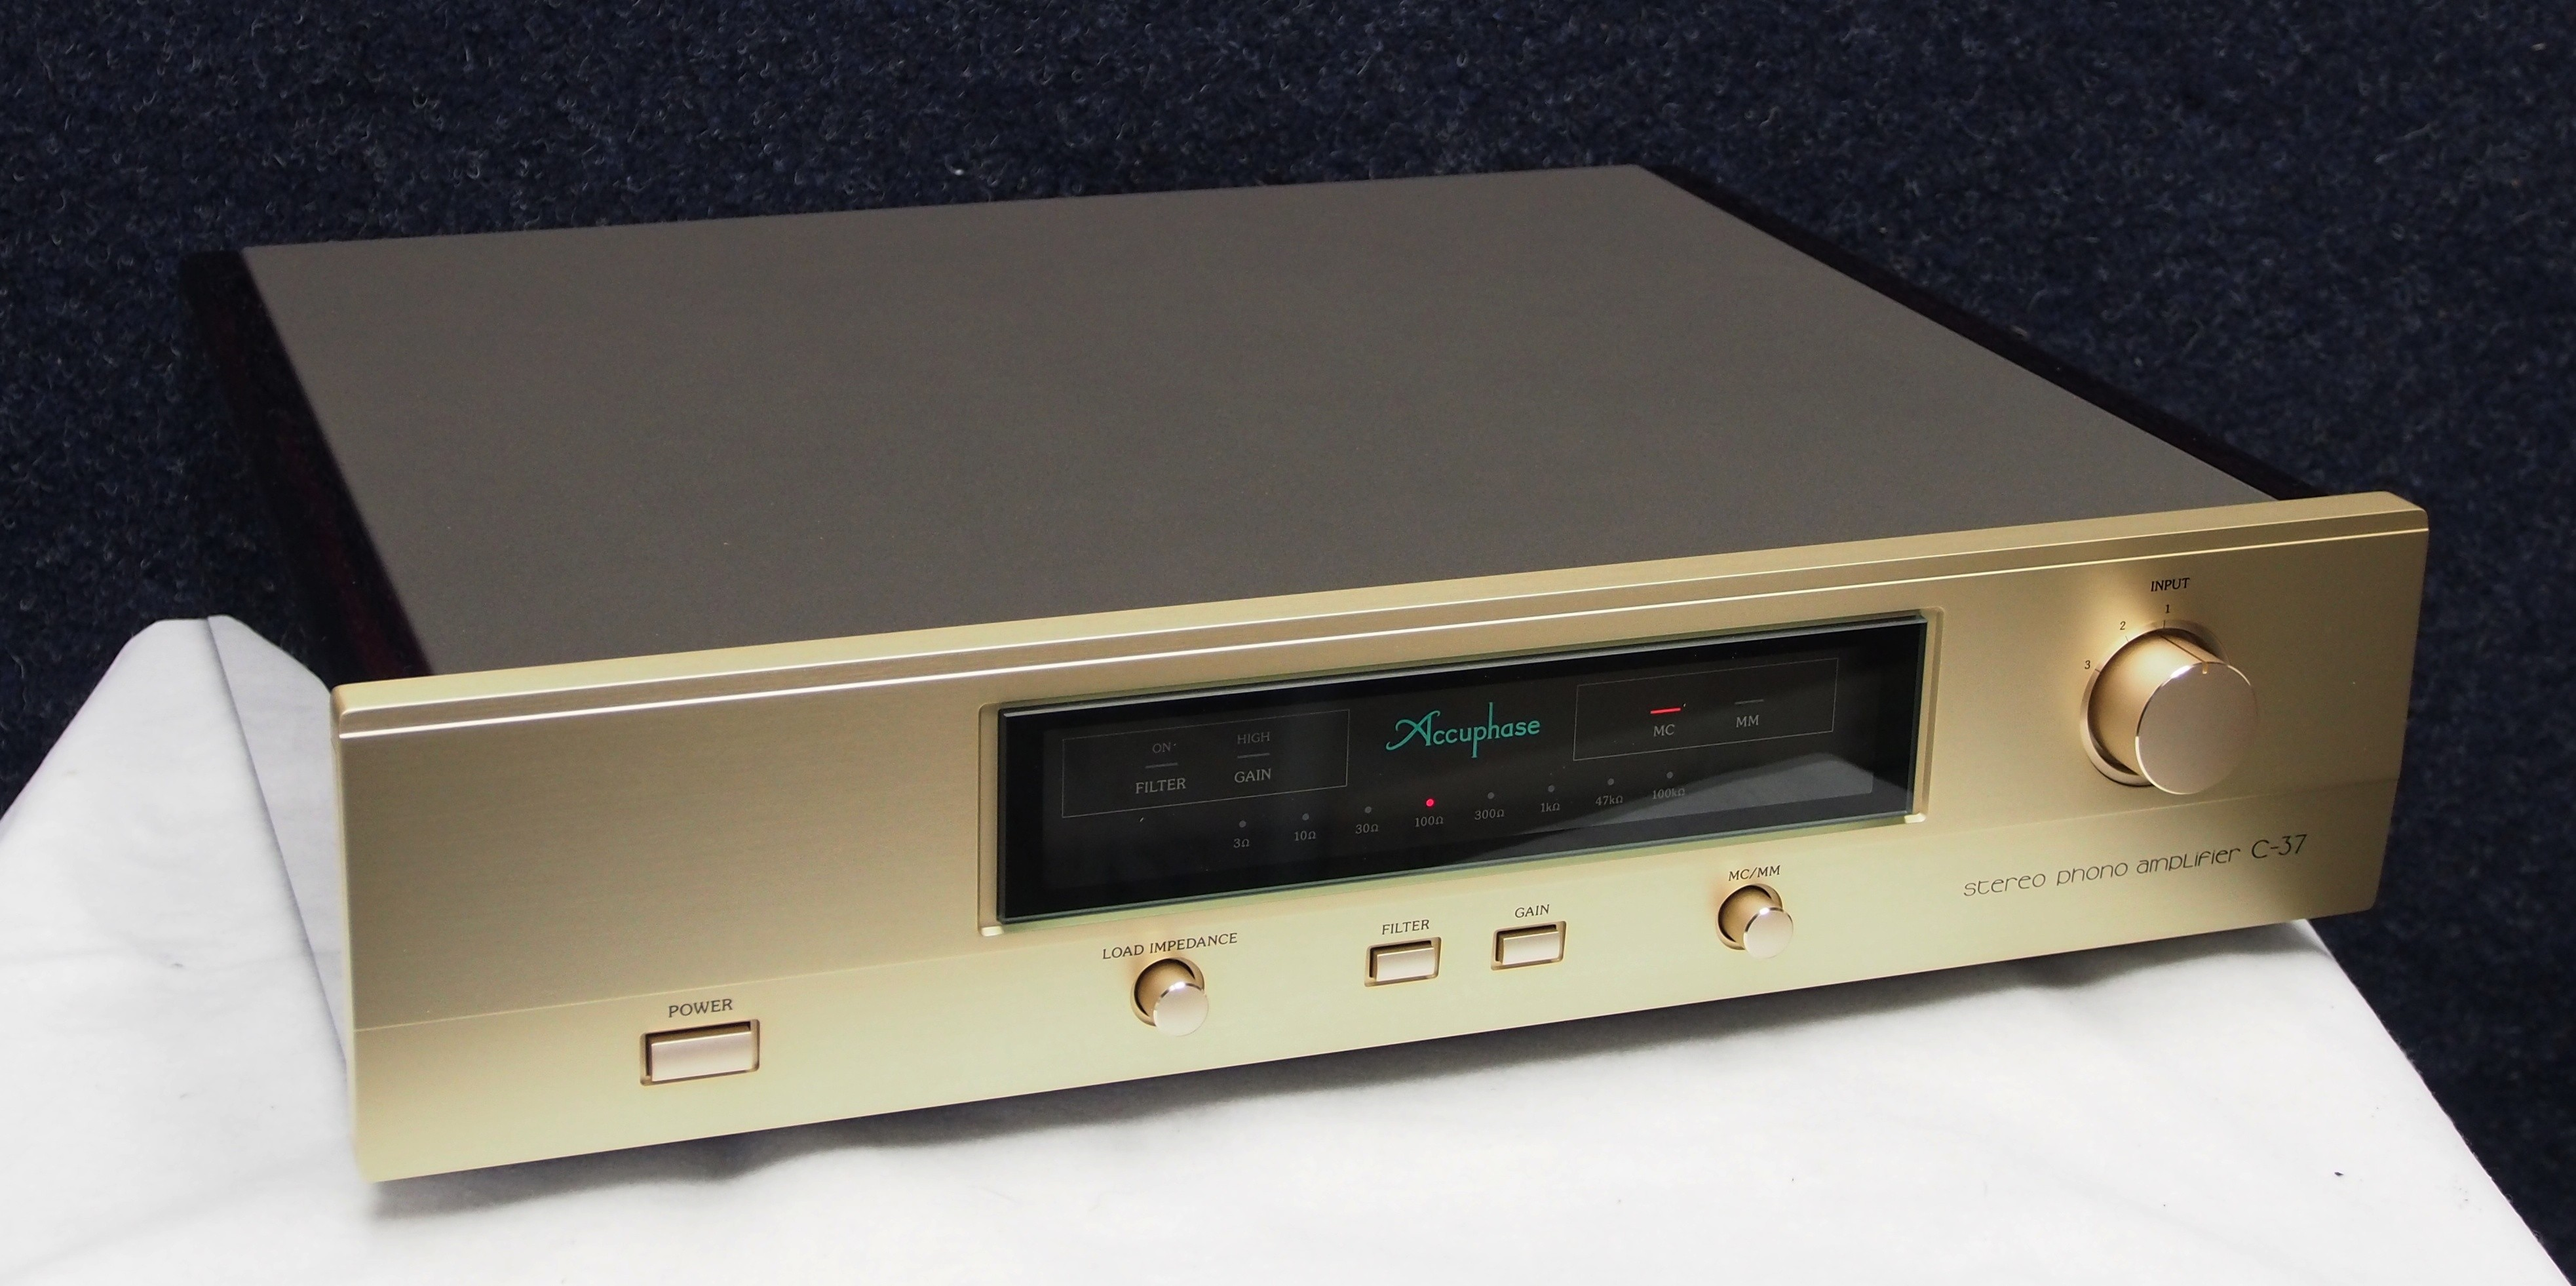 Accuphase C-37 5